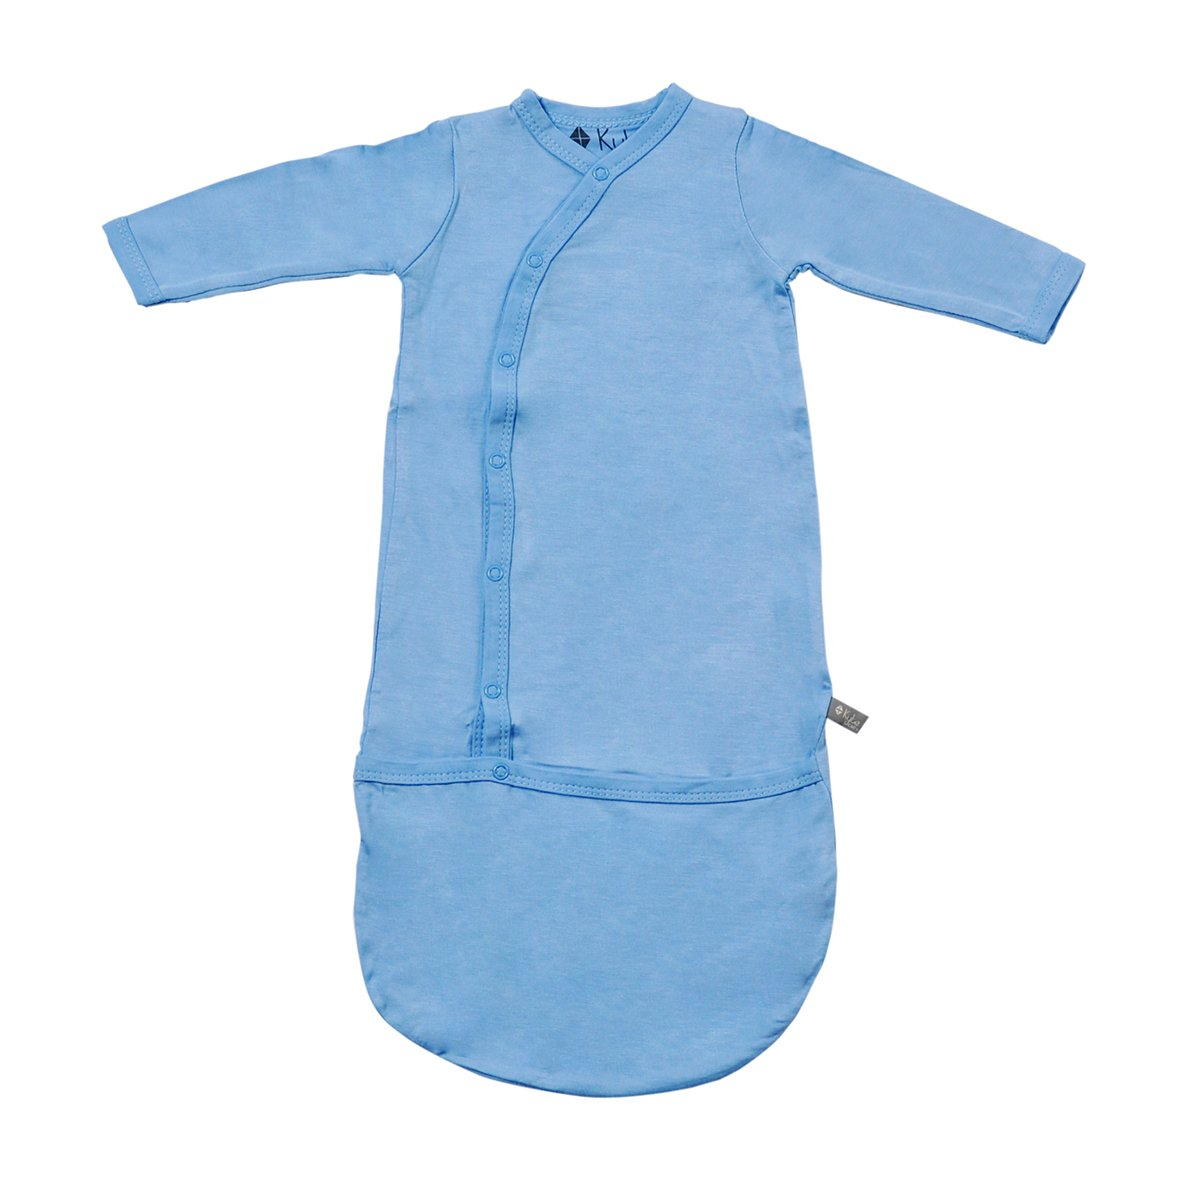 Kyte BABY Bundlers - Baby Sleeper Gowns Made of Soft Organic Bamboo Rayon Material - 0-6 Months - Solid Colors